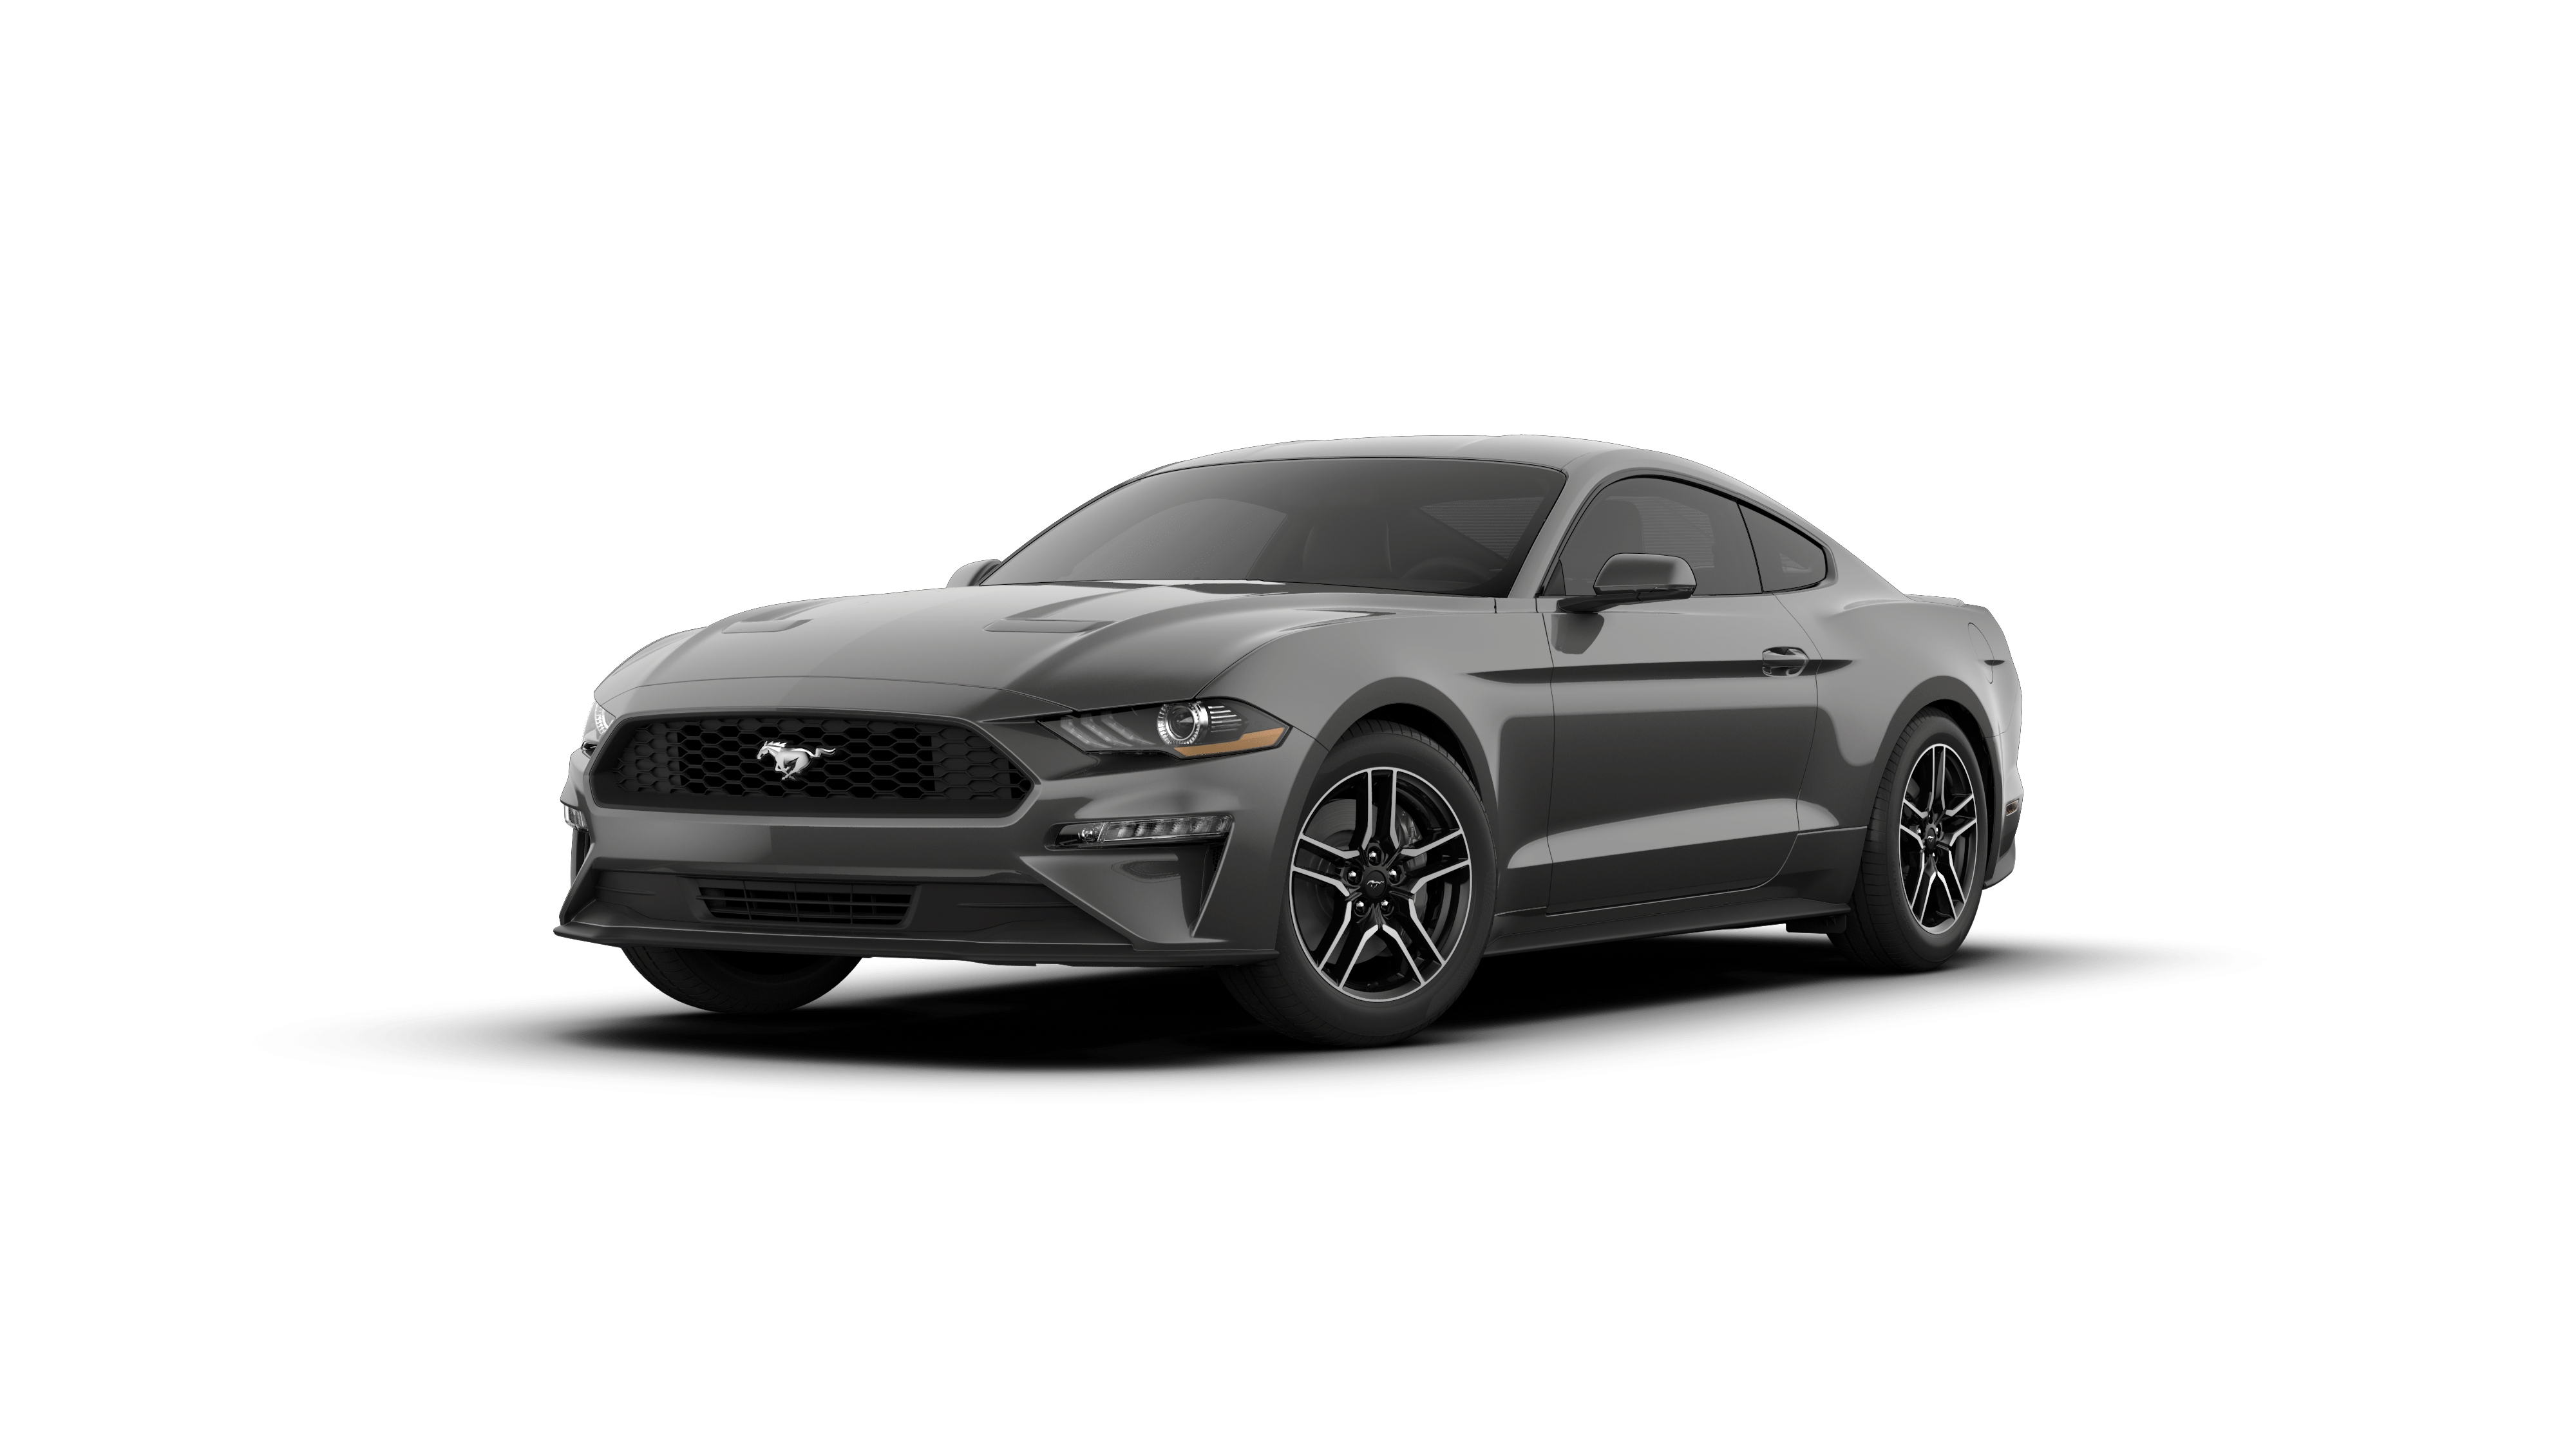 2019 Ford Mustang Vehicle Photo in Quakertown, PA 18951-1403